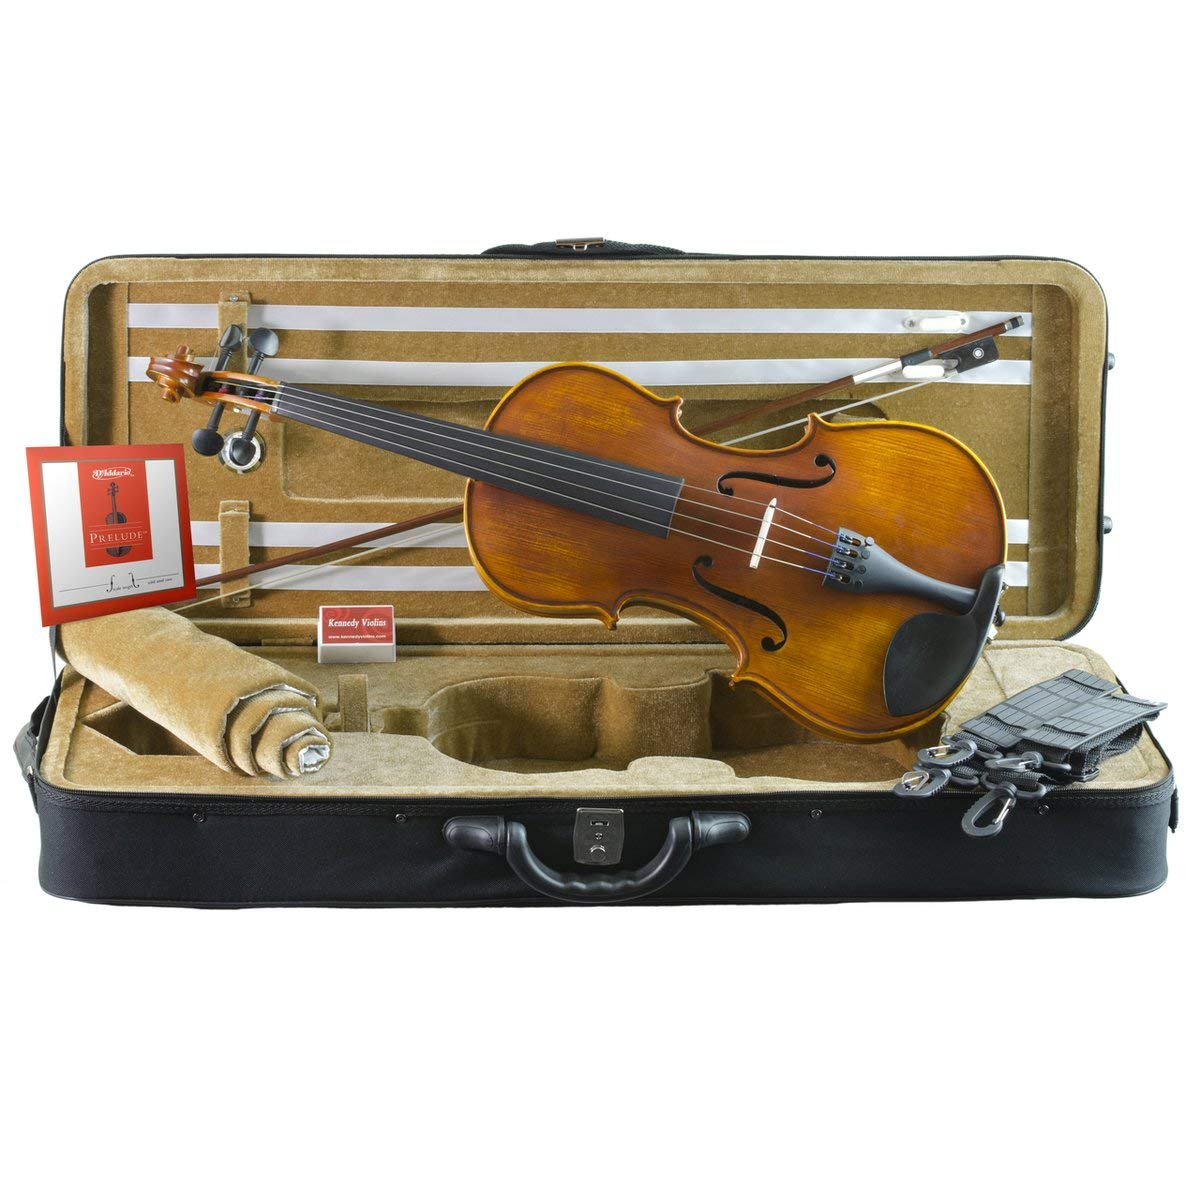 ghdonat.com Ricard Bunnel Viola Outfit 15.5-inch Size Musical ...